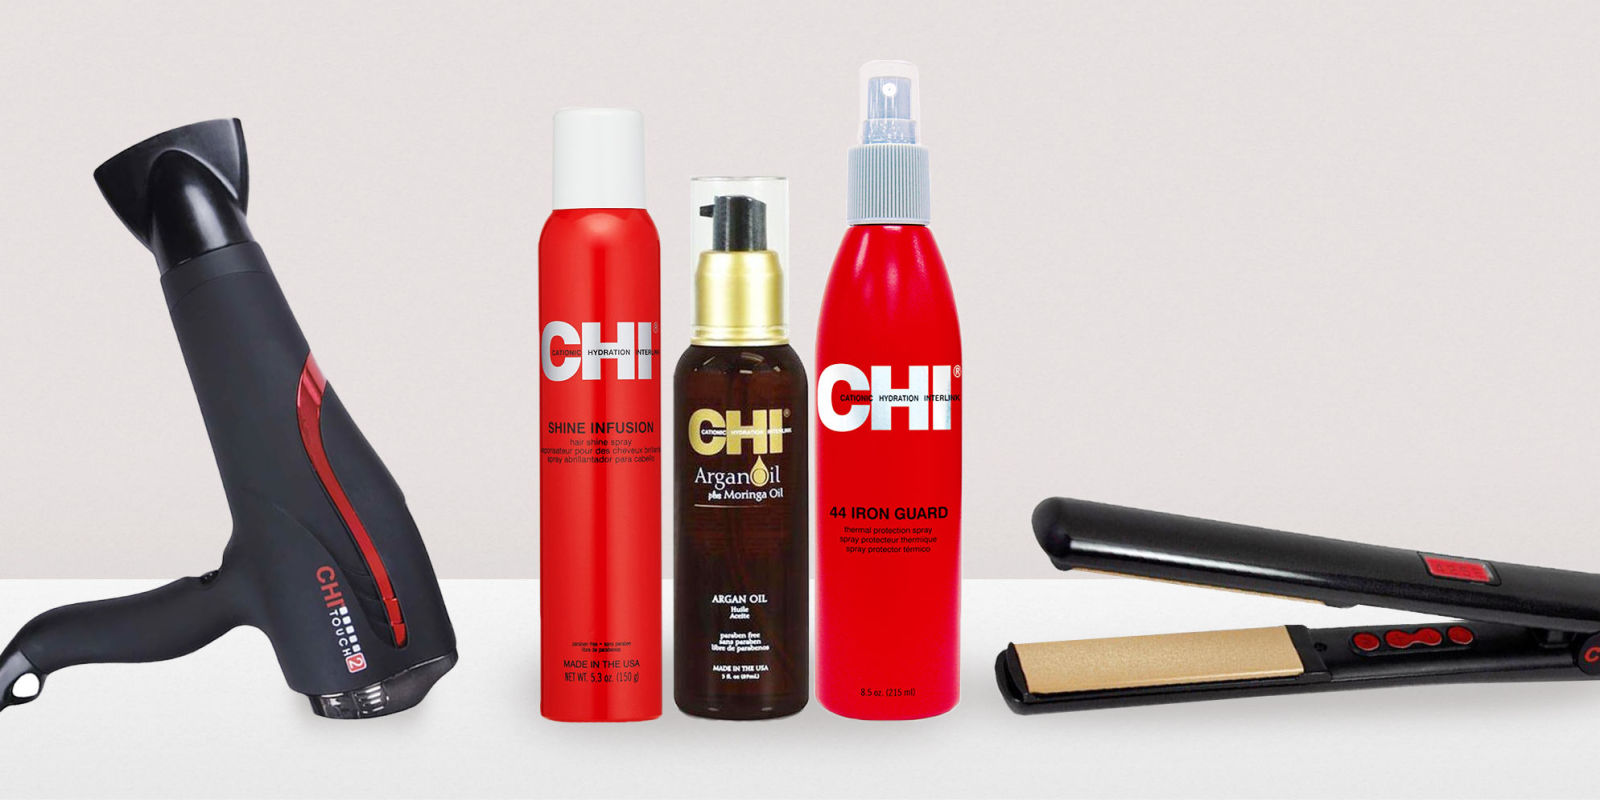 christmas outdoor picture ideas for babies - 9 Best CHI Hair Products in 2017 CHI Flat Irons